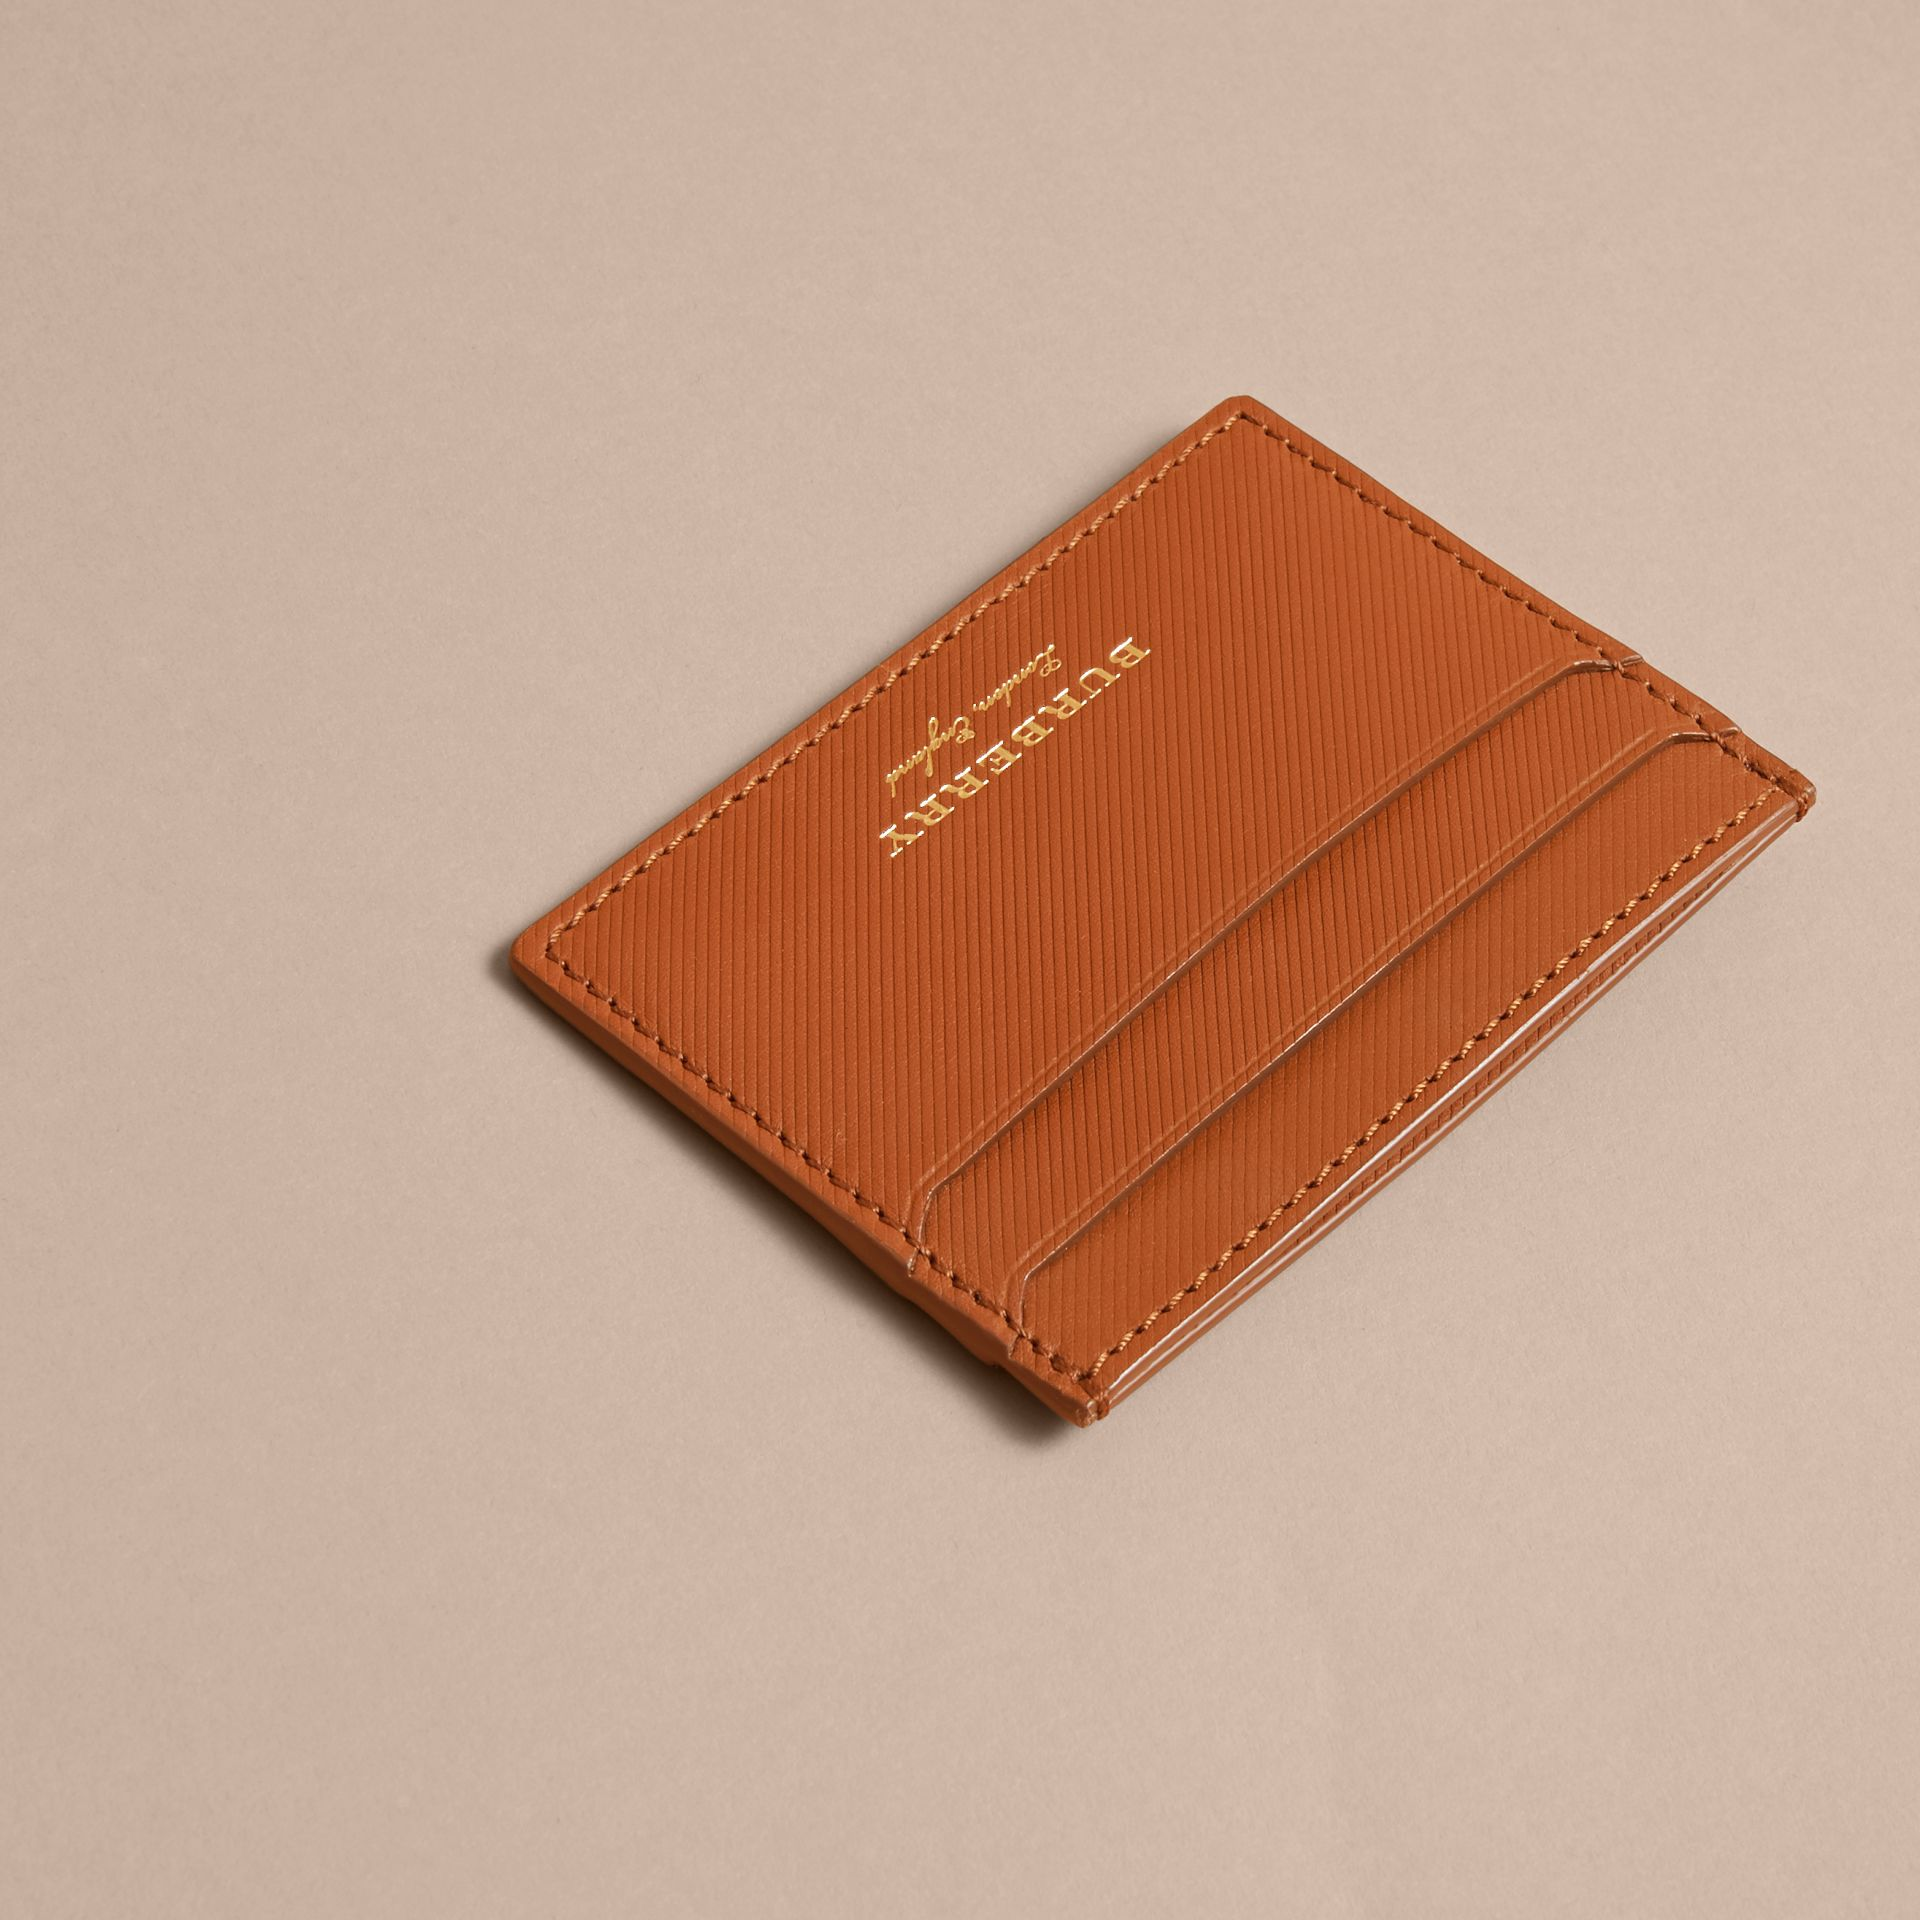 Trench Leather Card Case in Tan - Men | Burberry Australia - gallery image 3